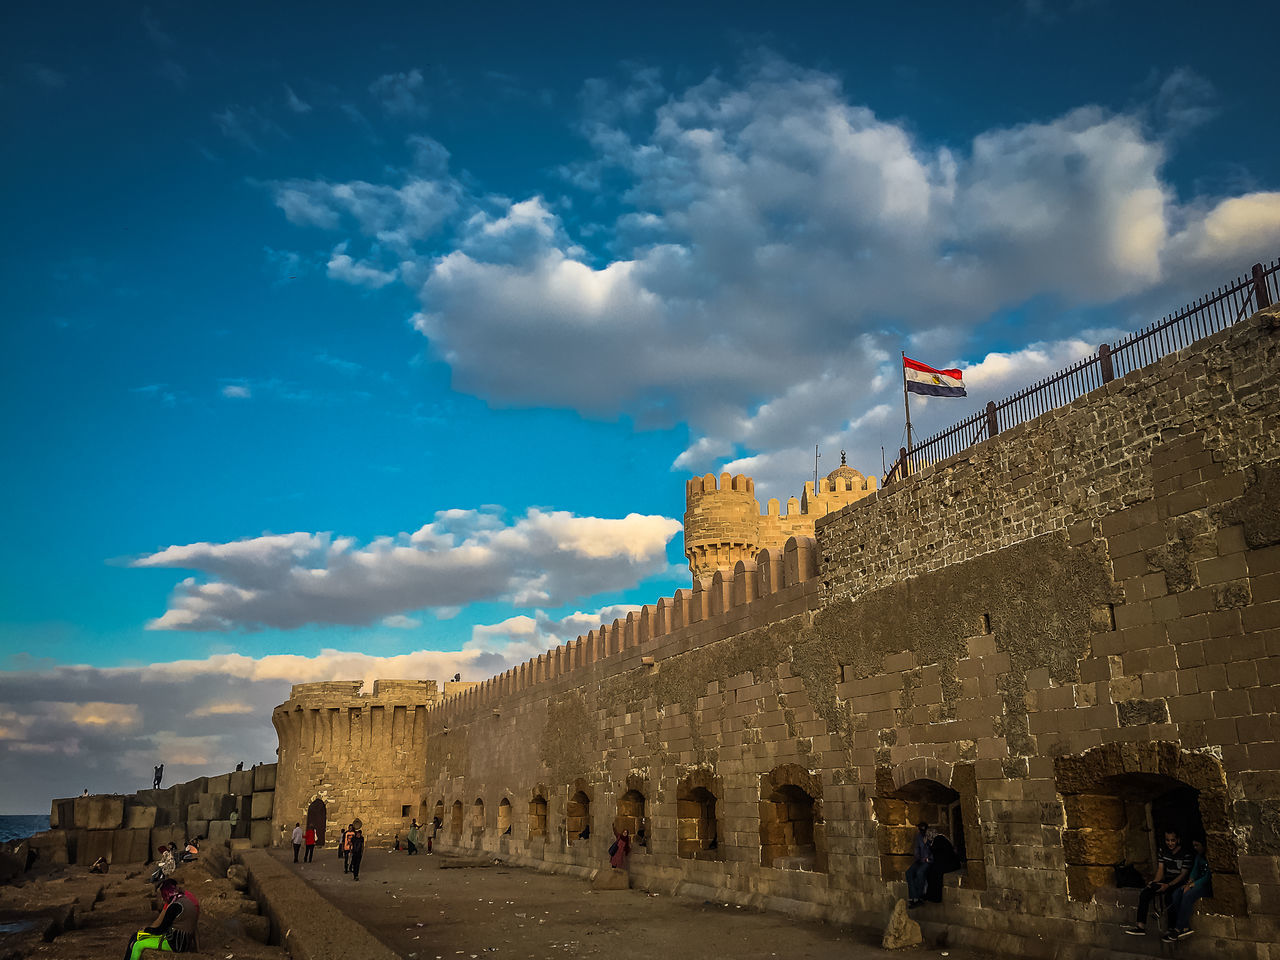 cloud - sky, history, architecture, built structure, sky, large group of people, building exterior, travel destinations, real people, tourism, day, ancient, flag, old ruin, outdoors, travel, low angle view, ancient civilization, women, men, pyramid, people